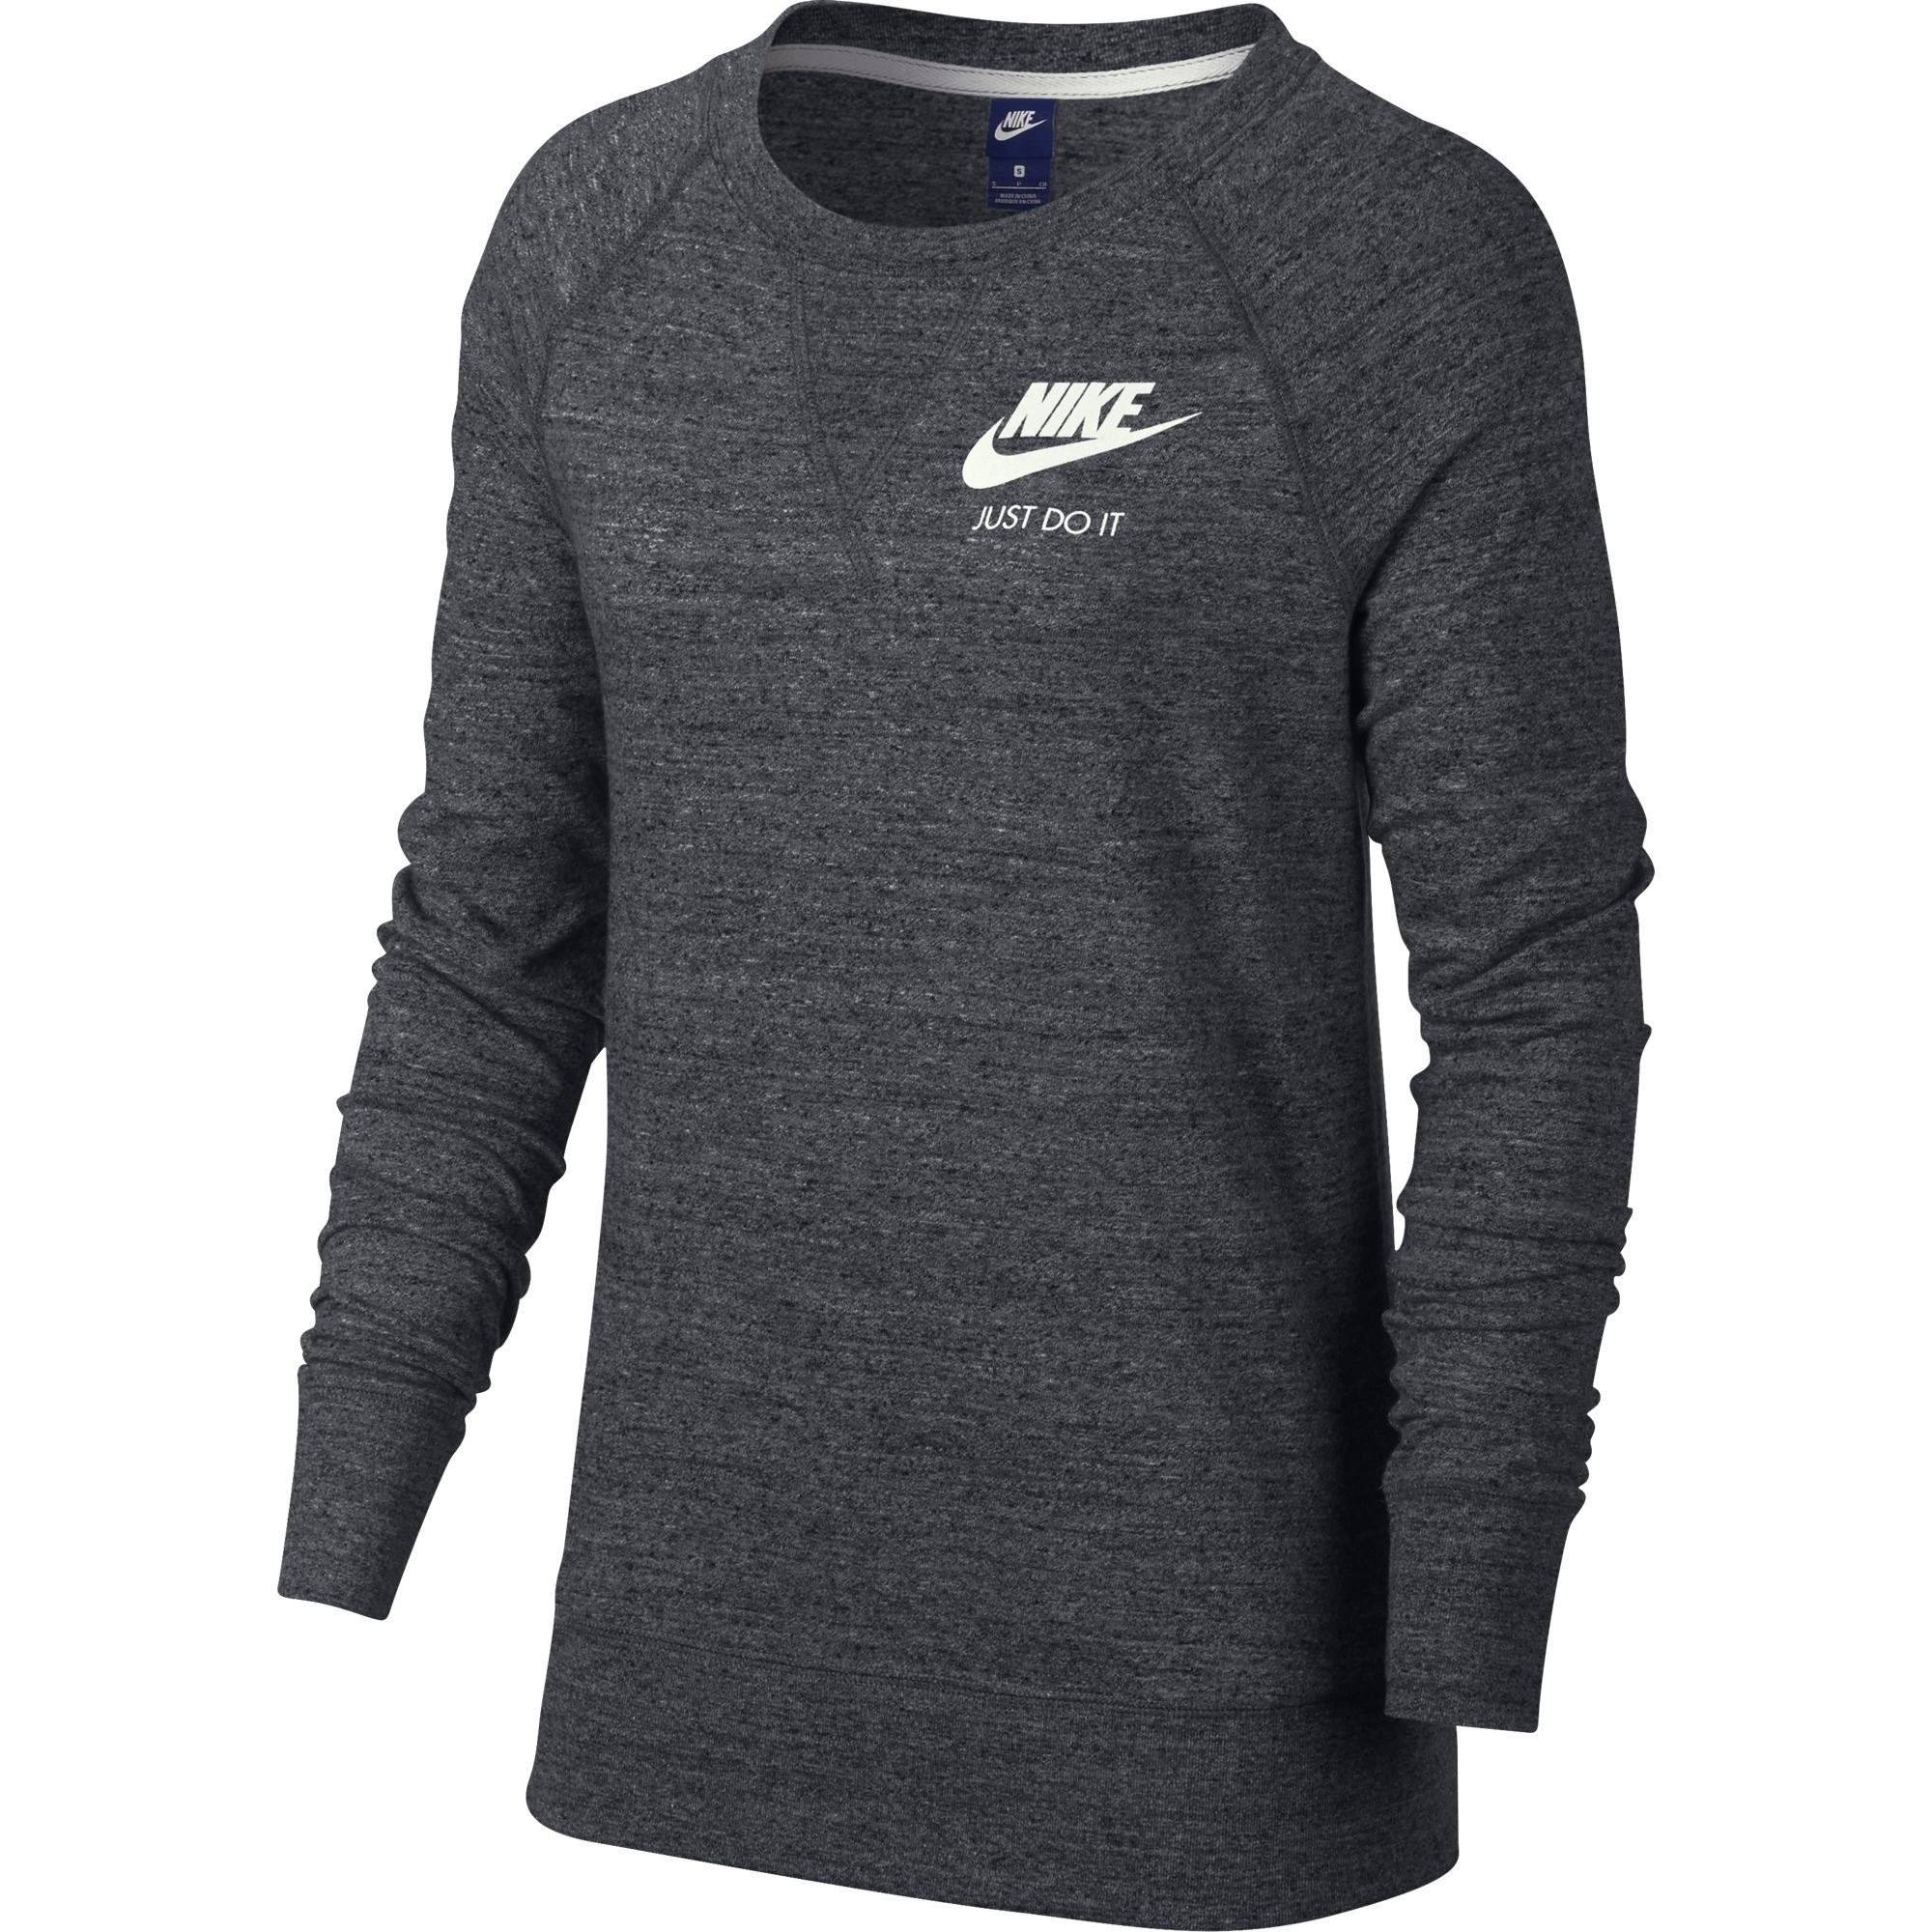 Nike Sportswear Gym Vintage Crew Carbon Heather/Sail Women's Clothing